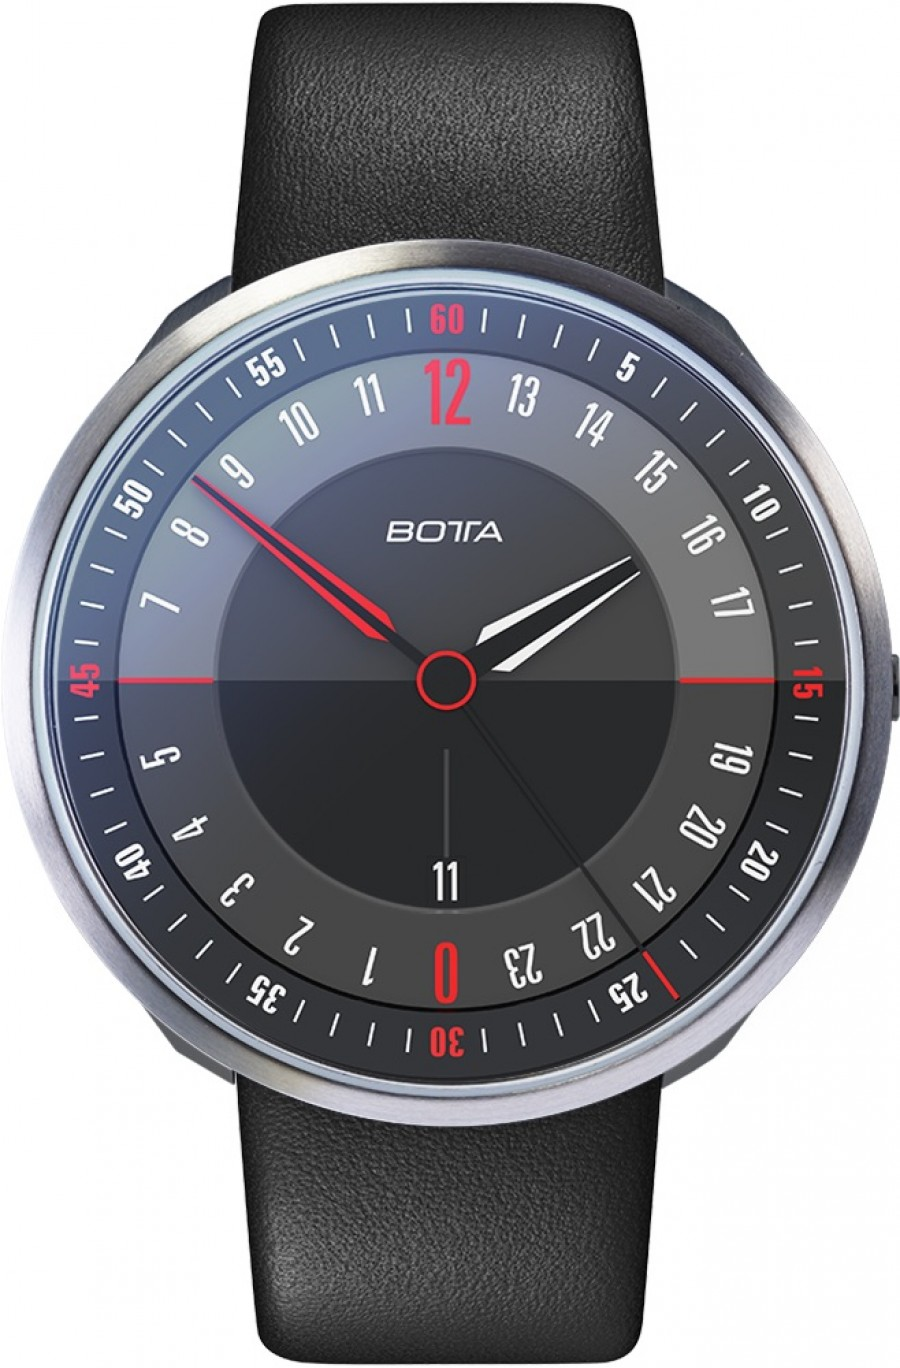 Botta Design tres 24 plus black 789710 quartz